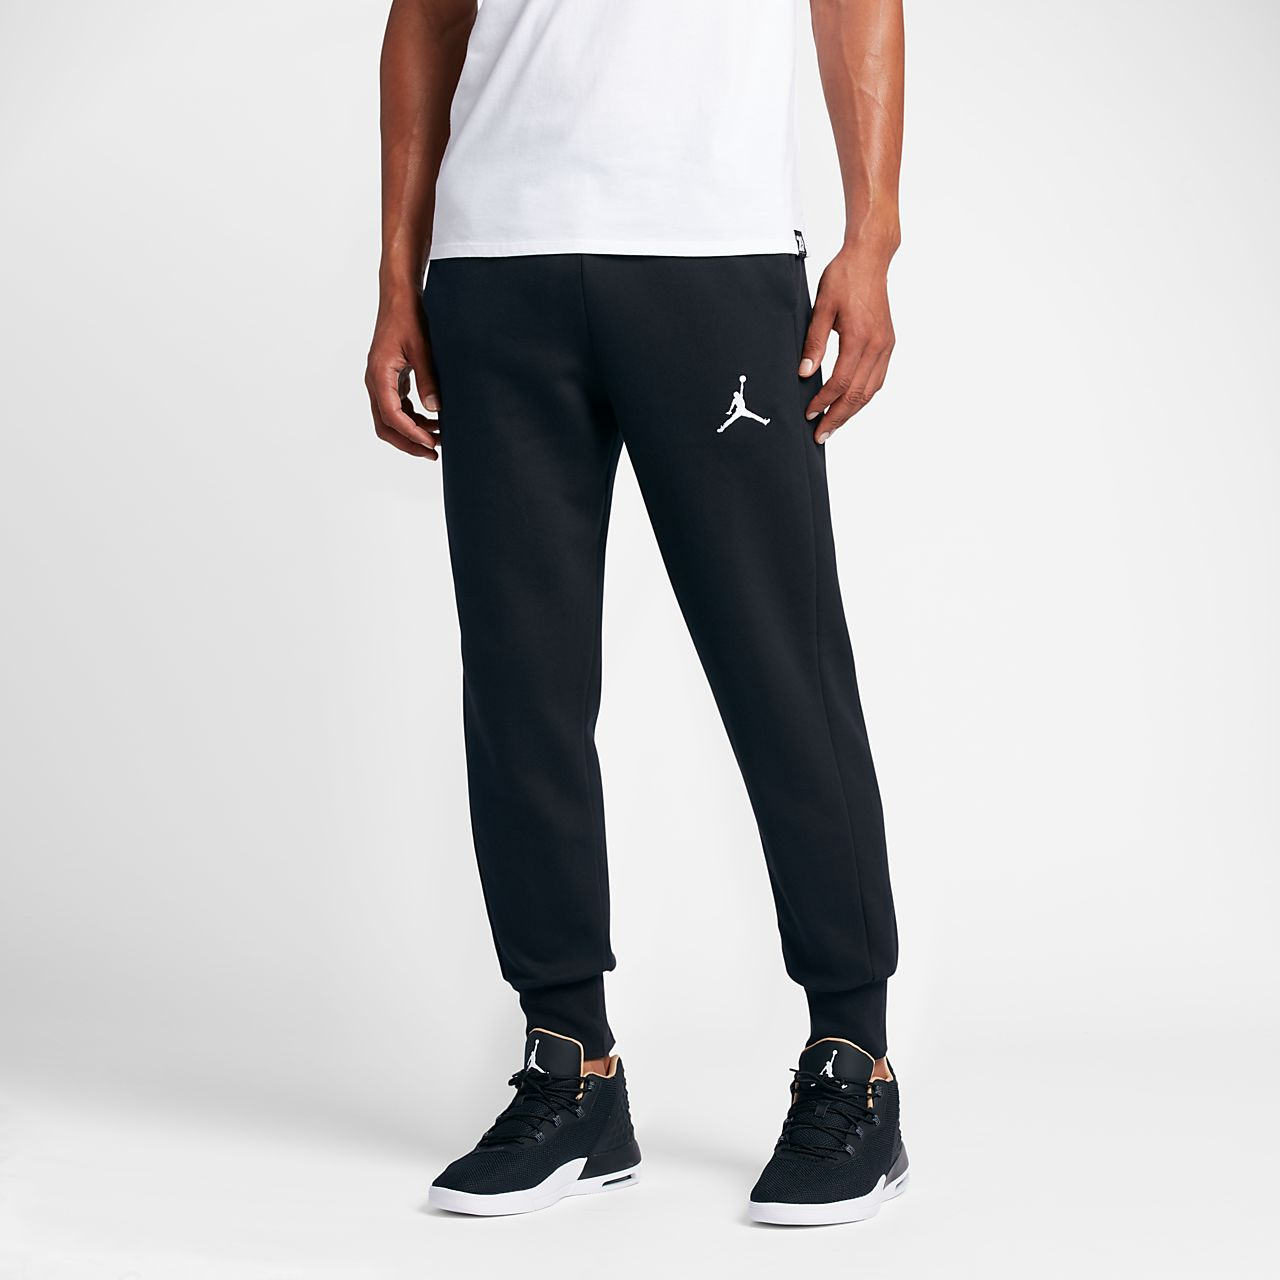 9257a306701 Jordan Flight Men's Trousers. Nike.com LU